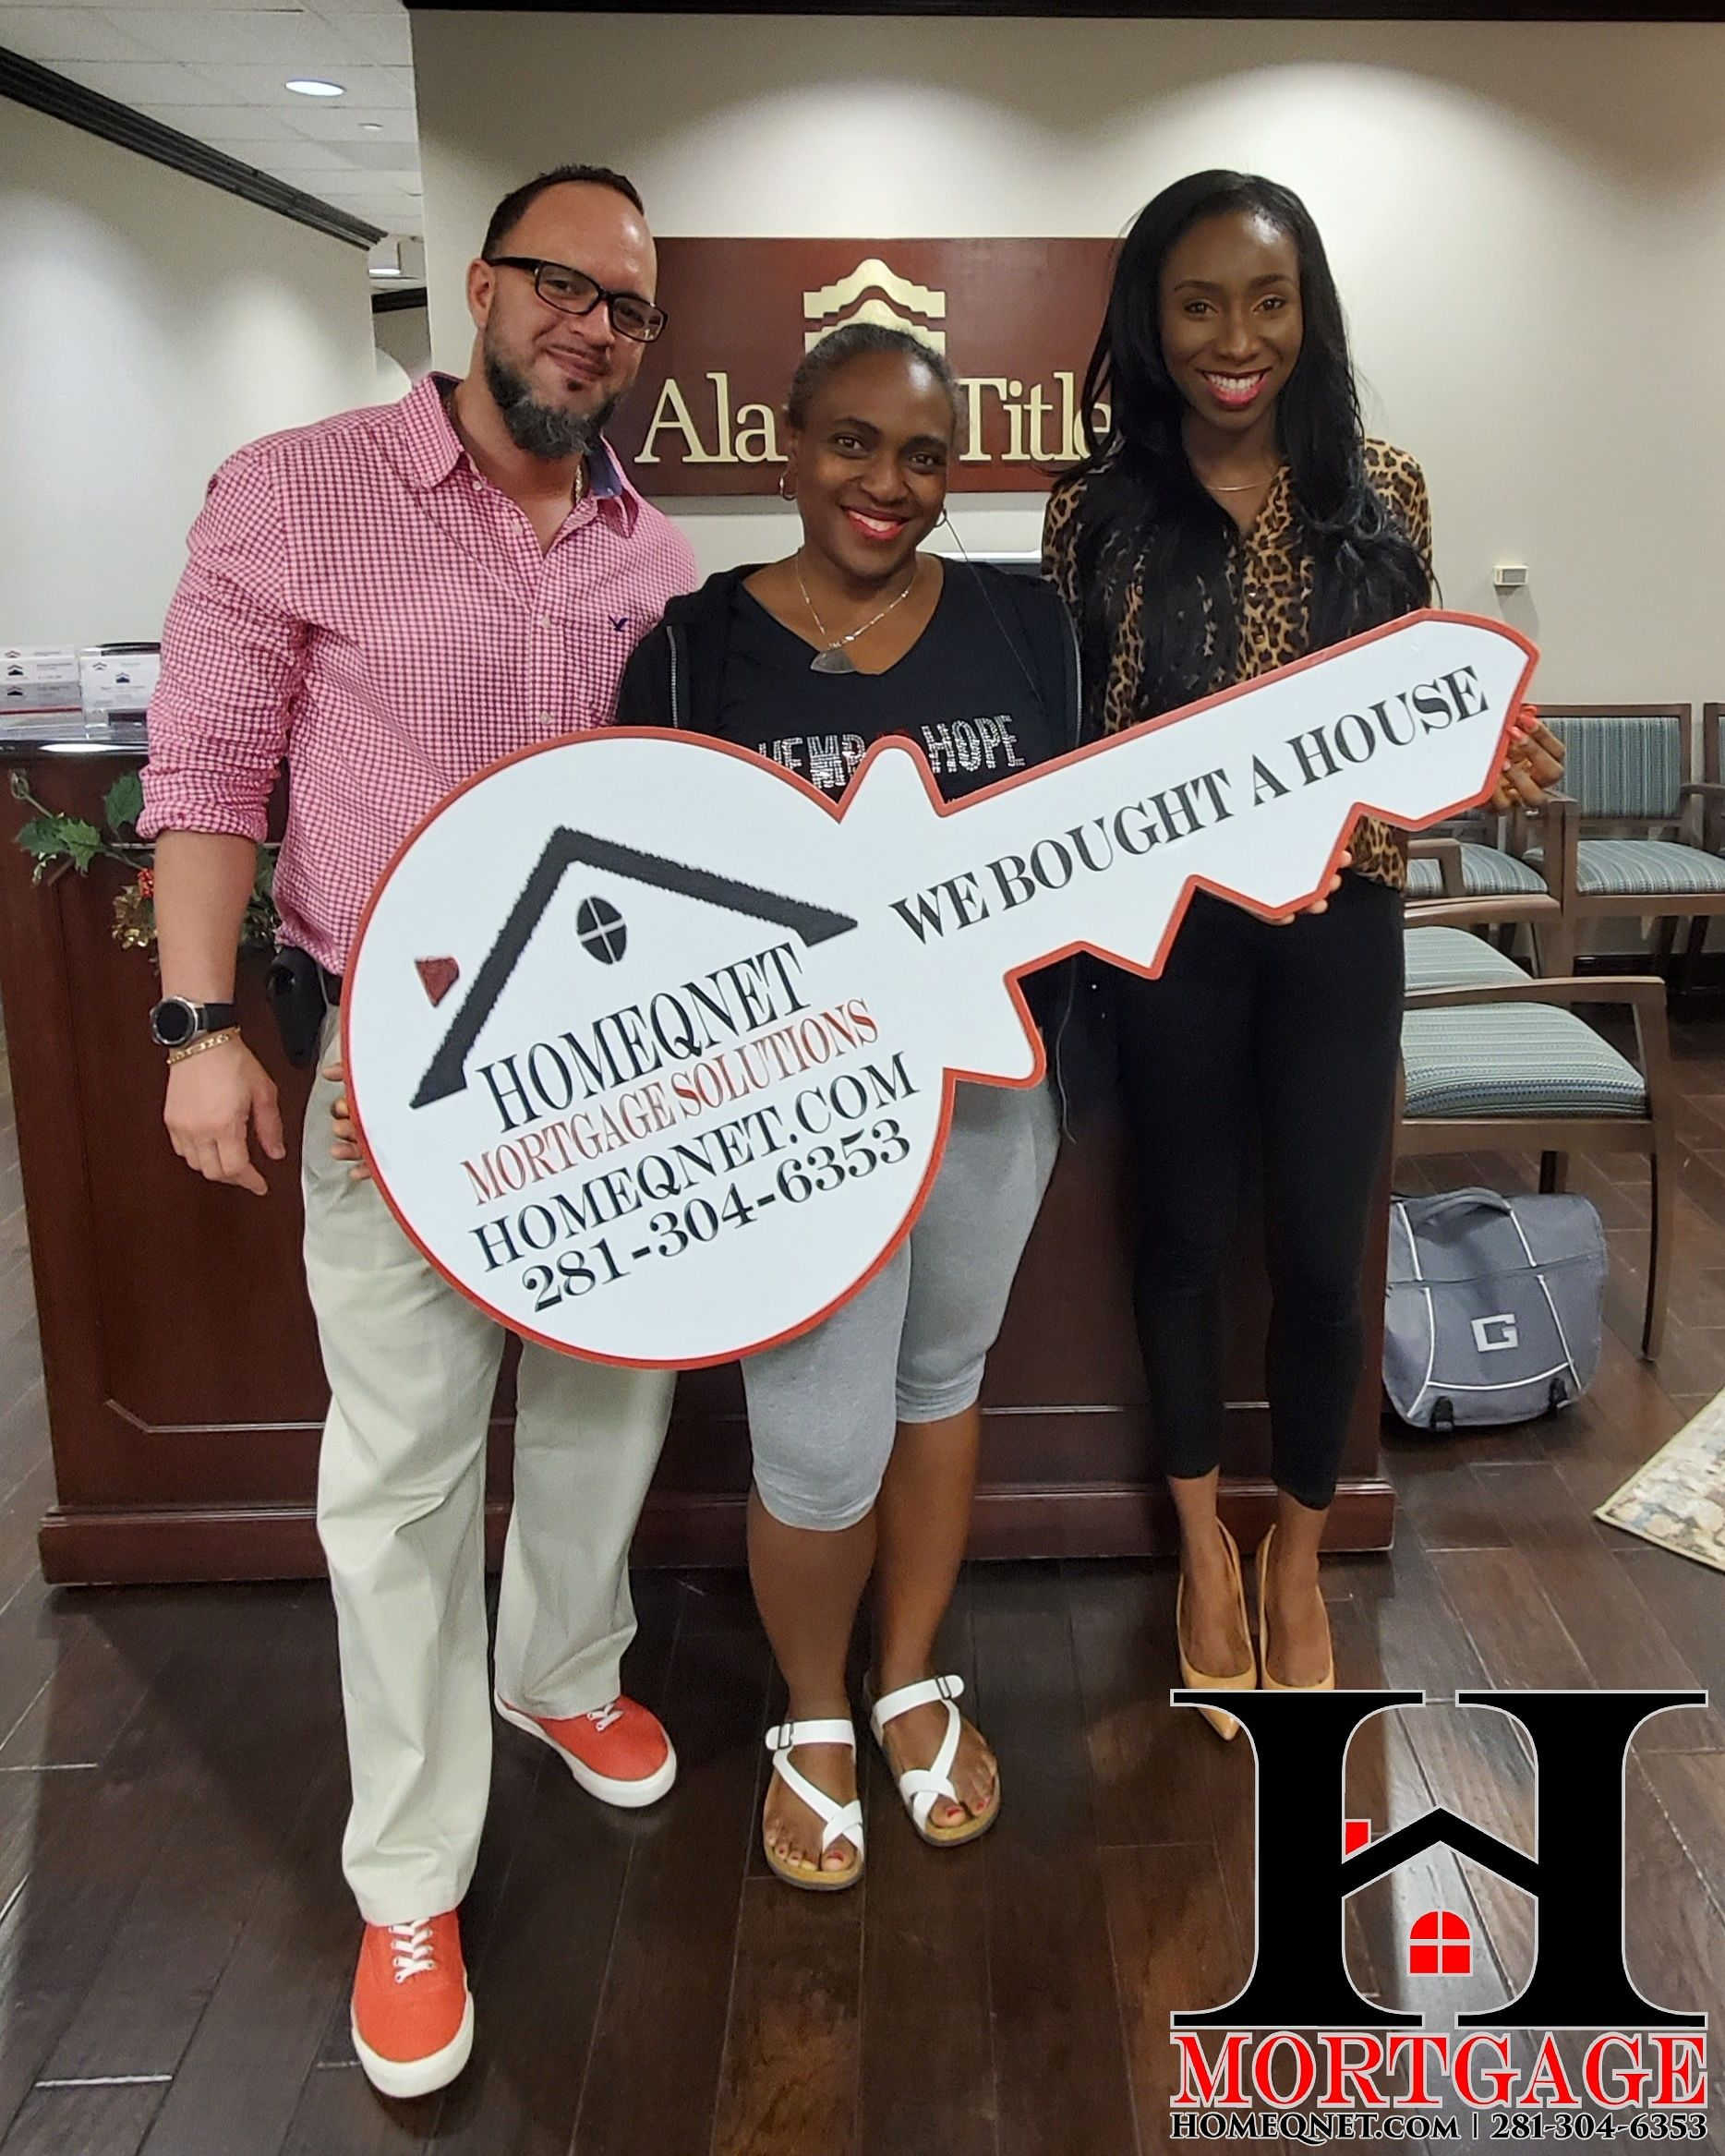 Congratulations to Mrs. Ekpecham on her home purchase